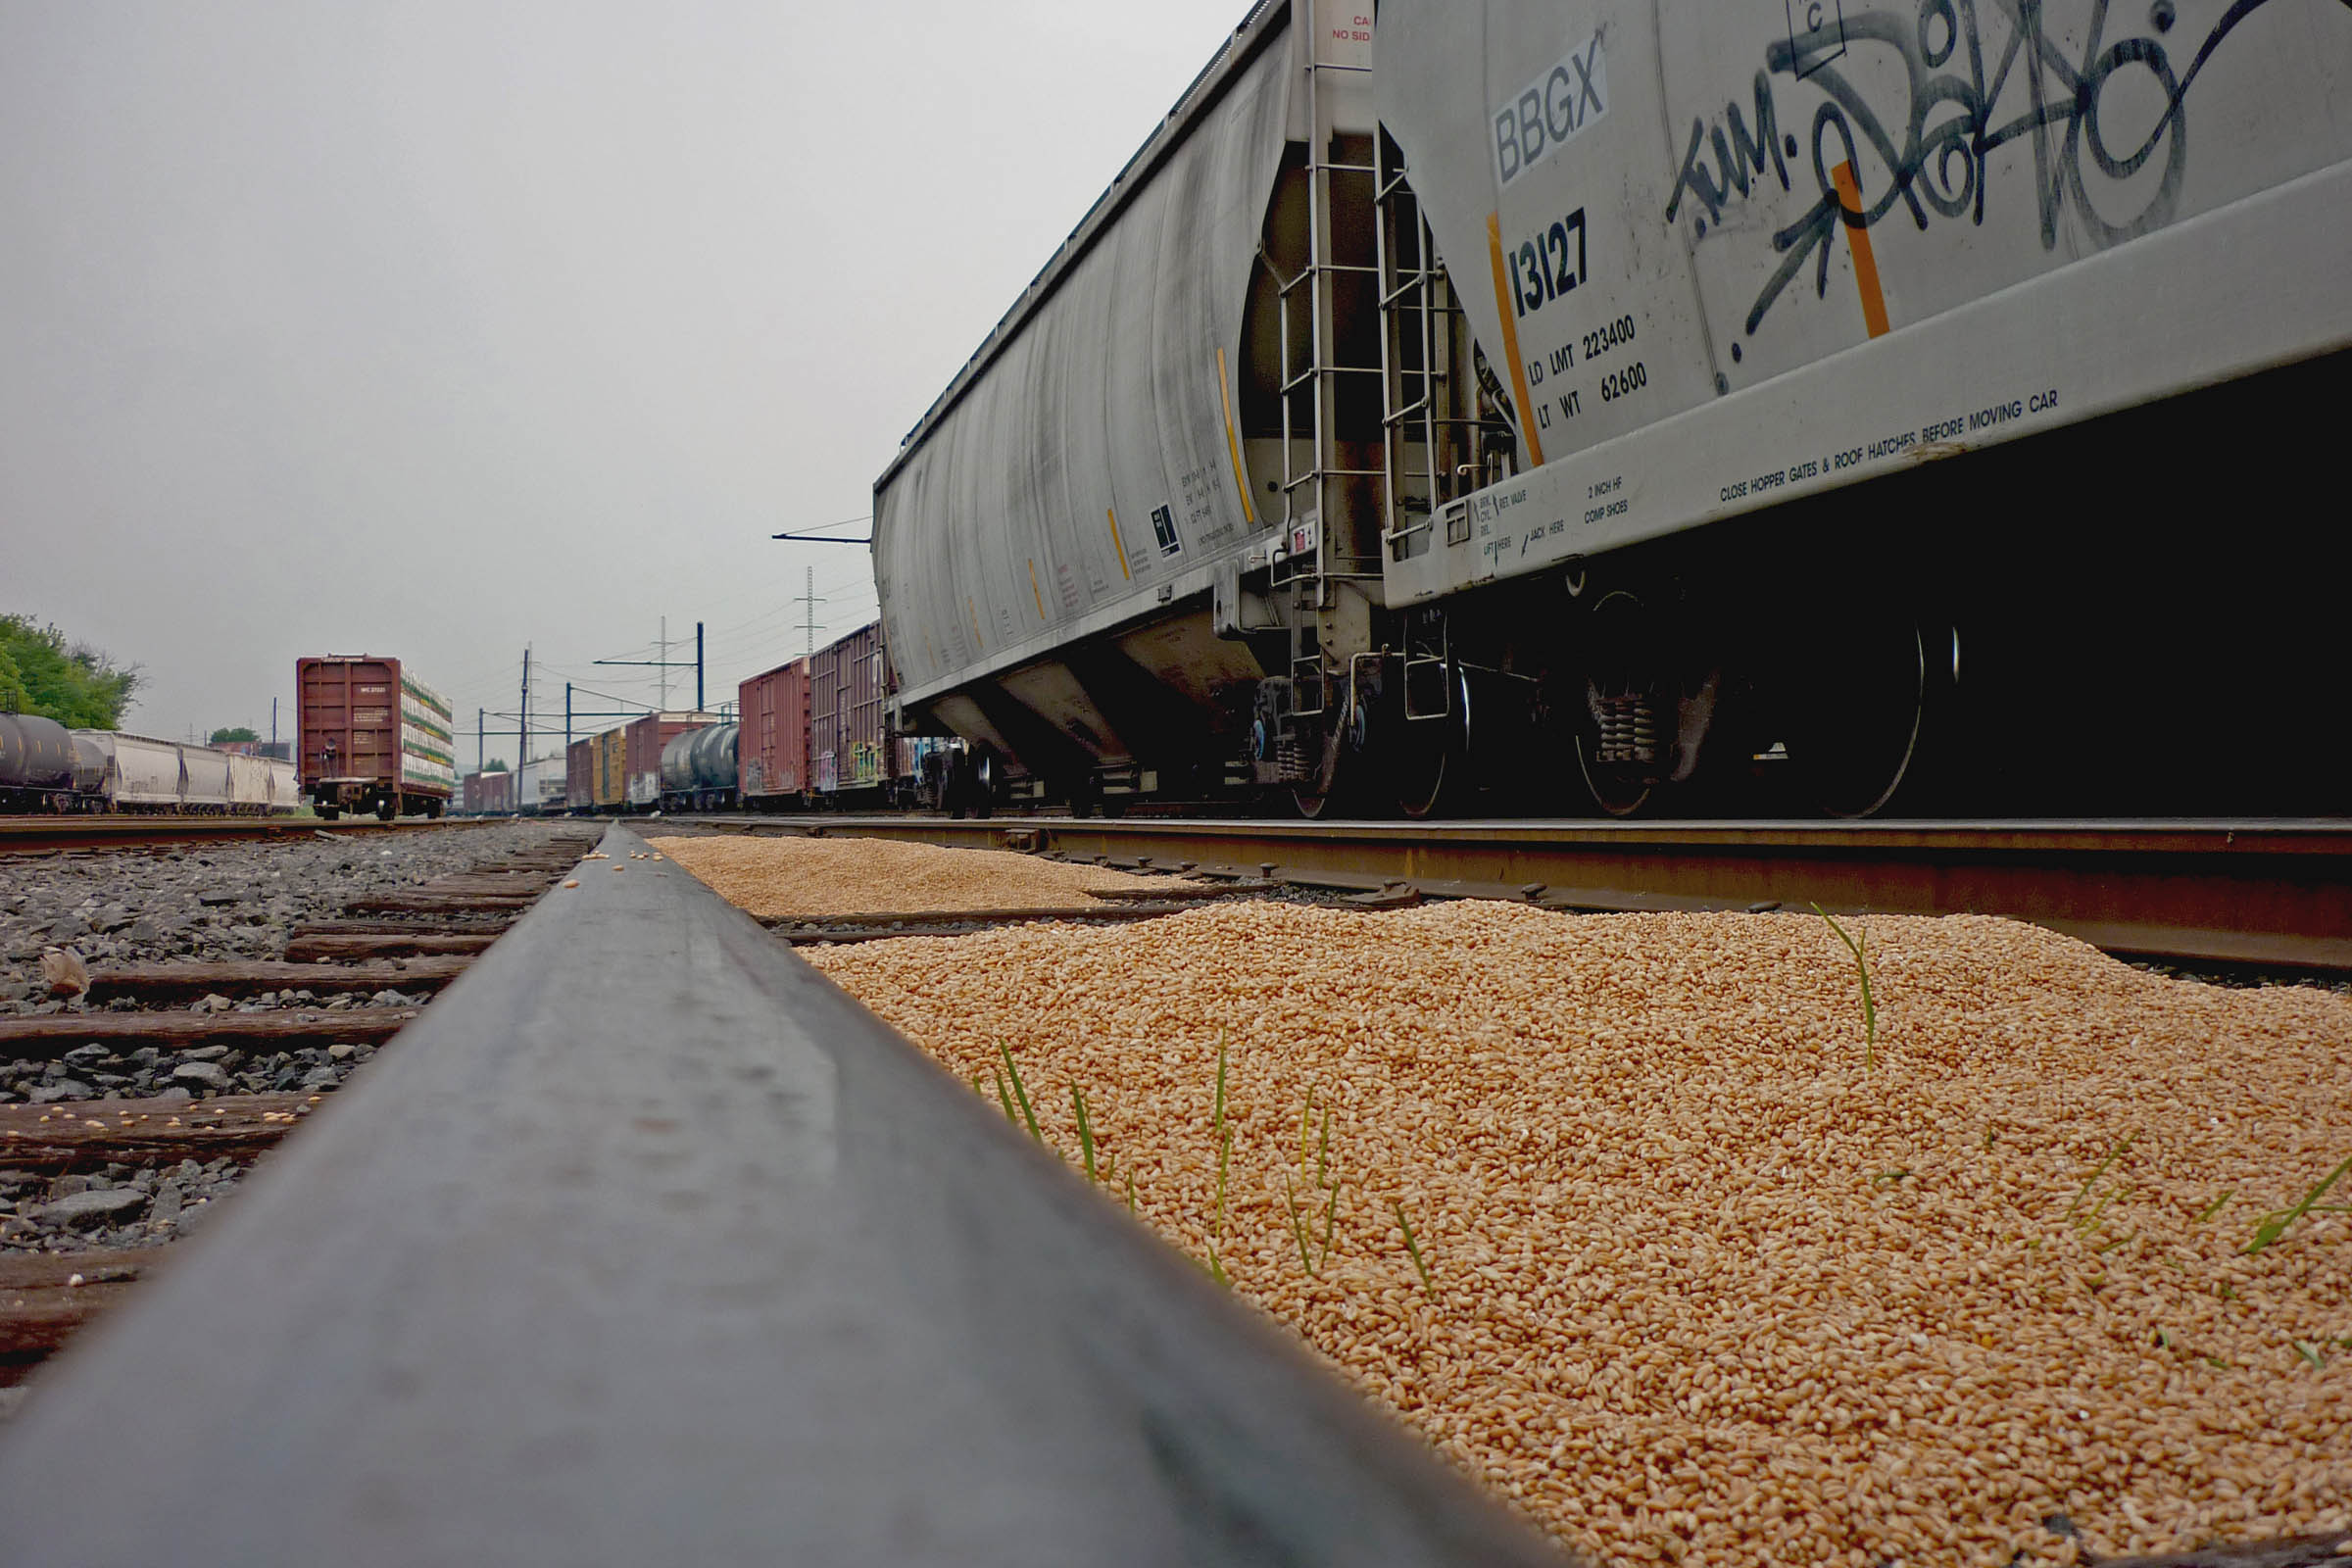 Close-up of a pile of grain that has leaked from a rail car, USA, 2010.